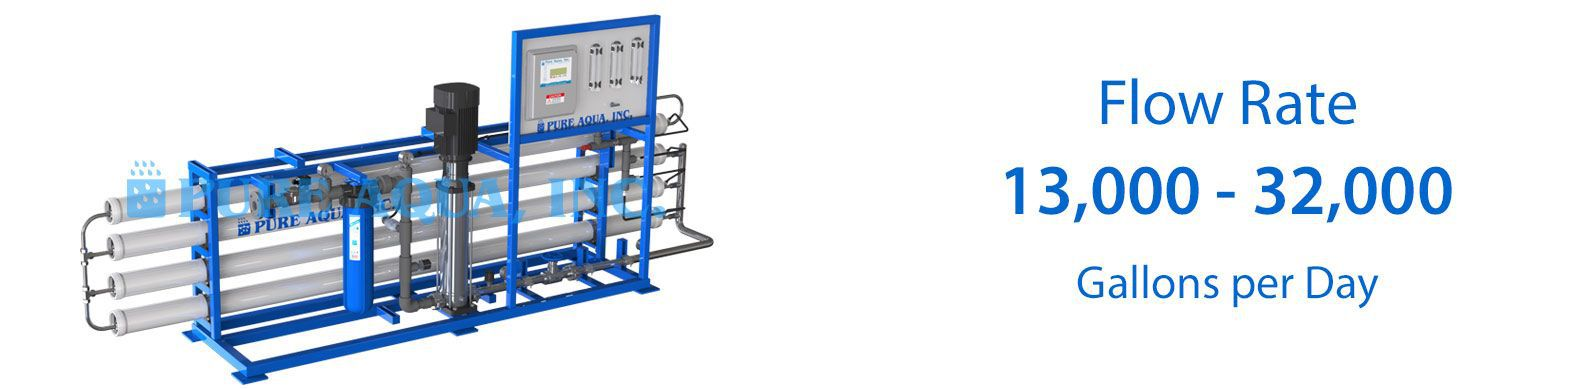 commercial brackish water reverse osmosis BWRO systems 13000-32000 gpd specifications